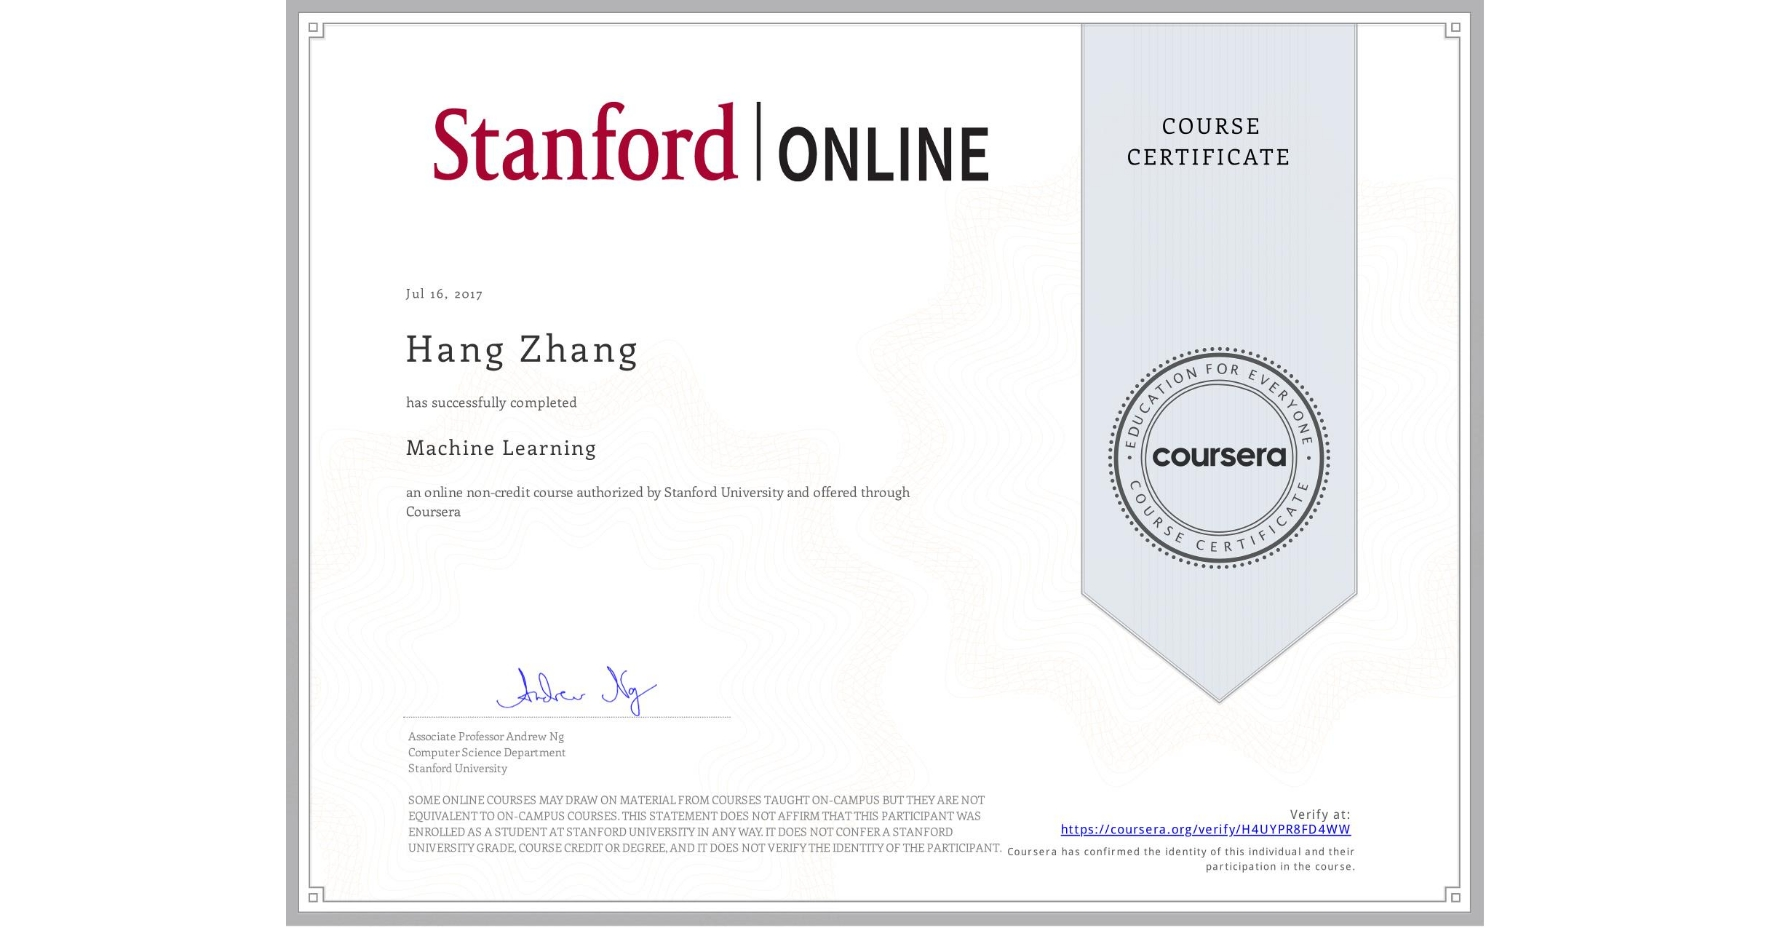 View certificate for Hang Zhang, Machine Learning, an online non-credit course authorized by Stanford University and offered through Coursera